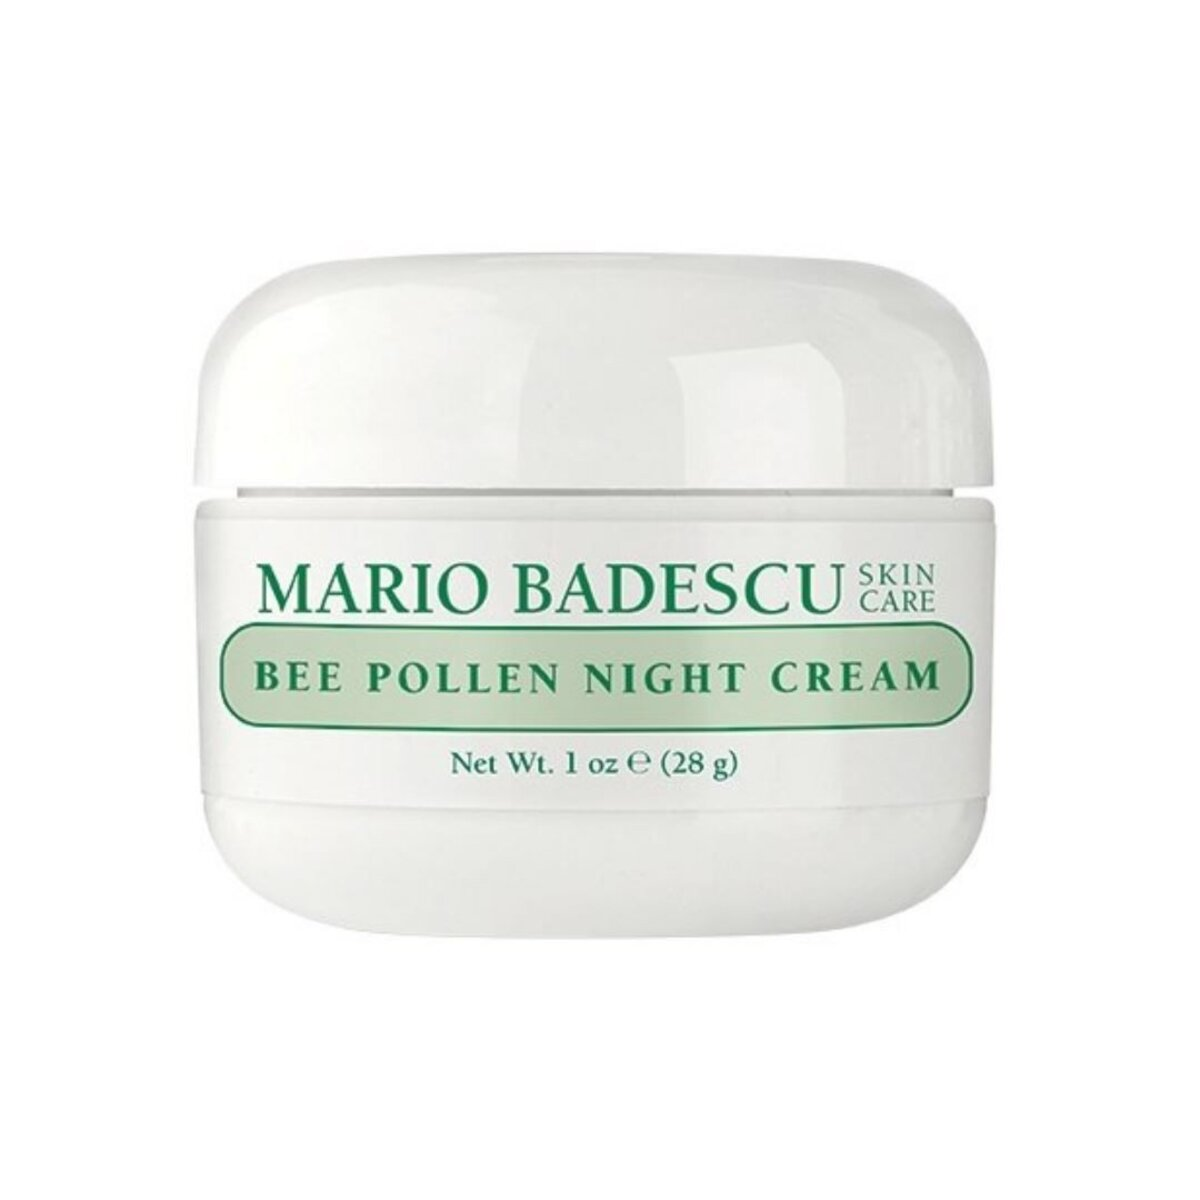 Bee Pollen Night Cream - Mario Badescu